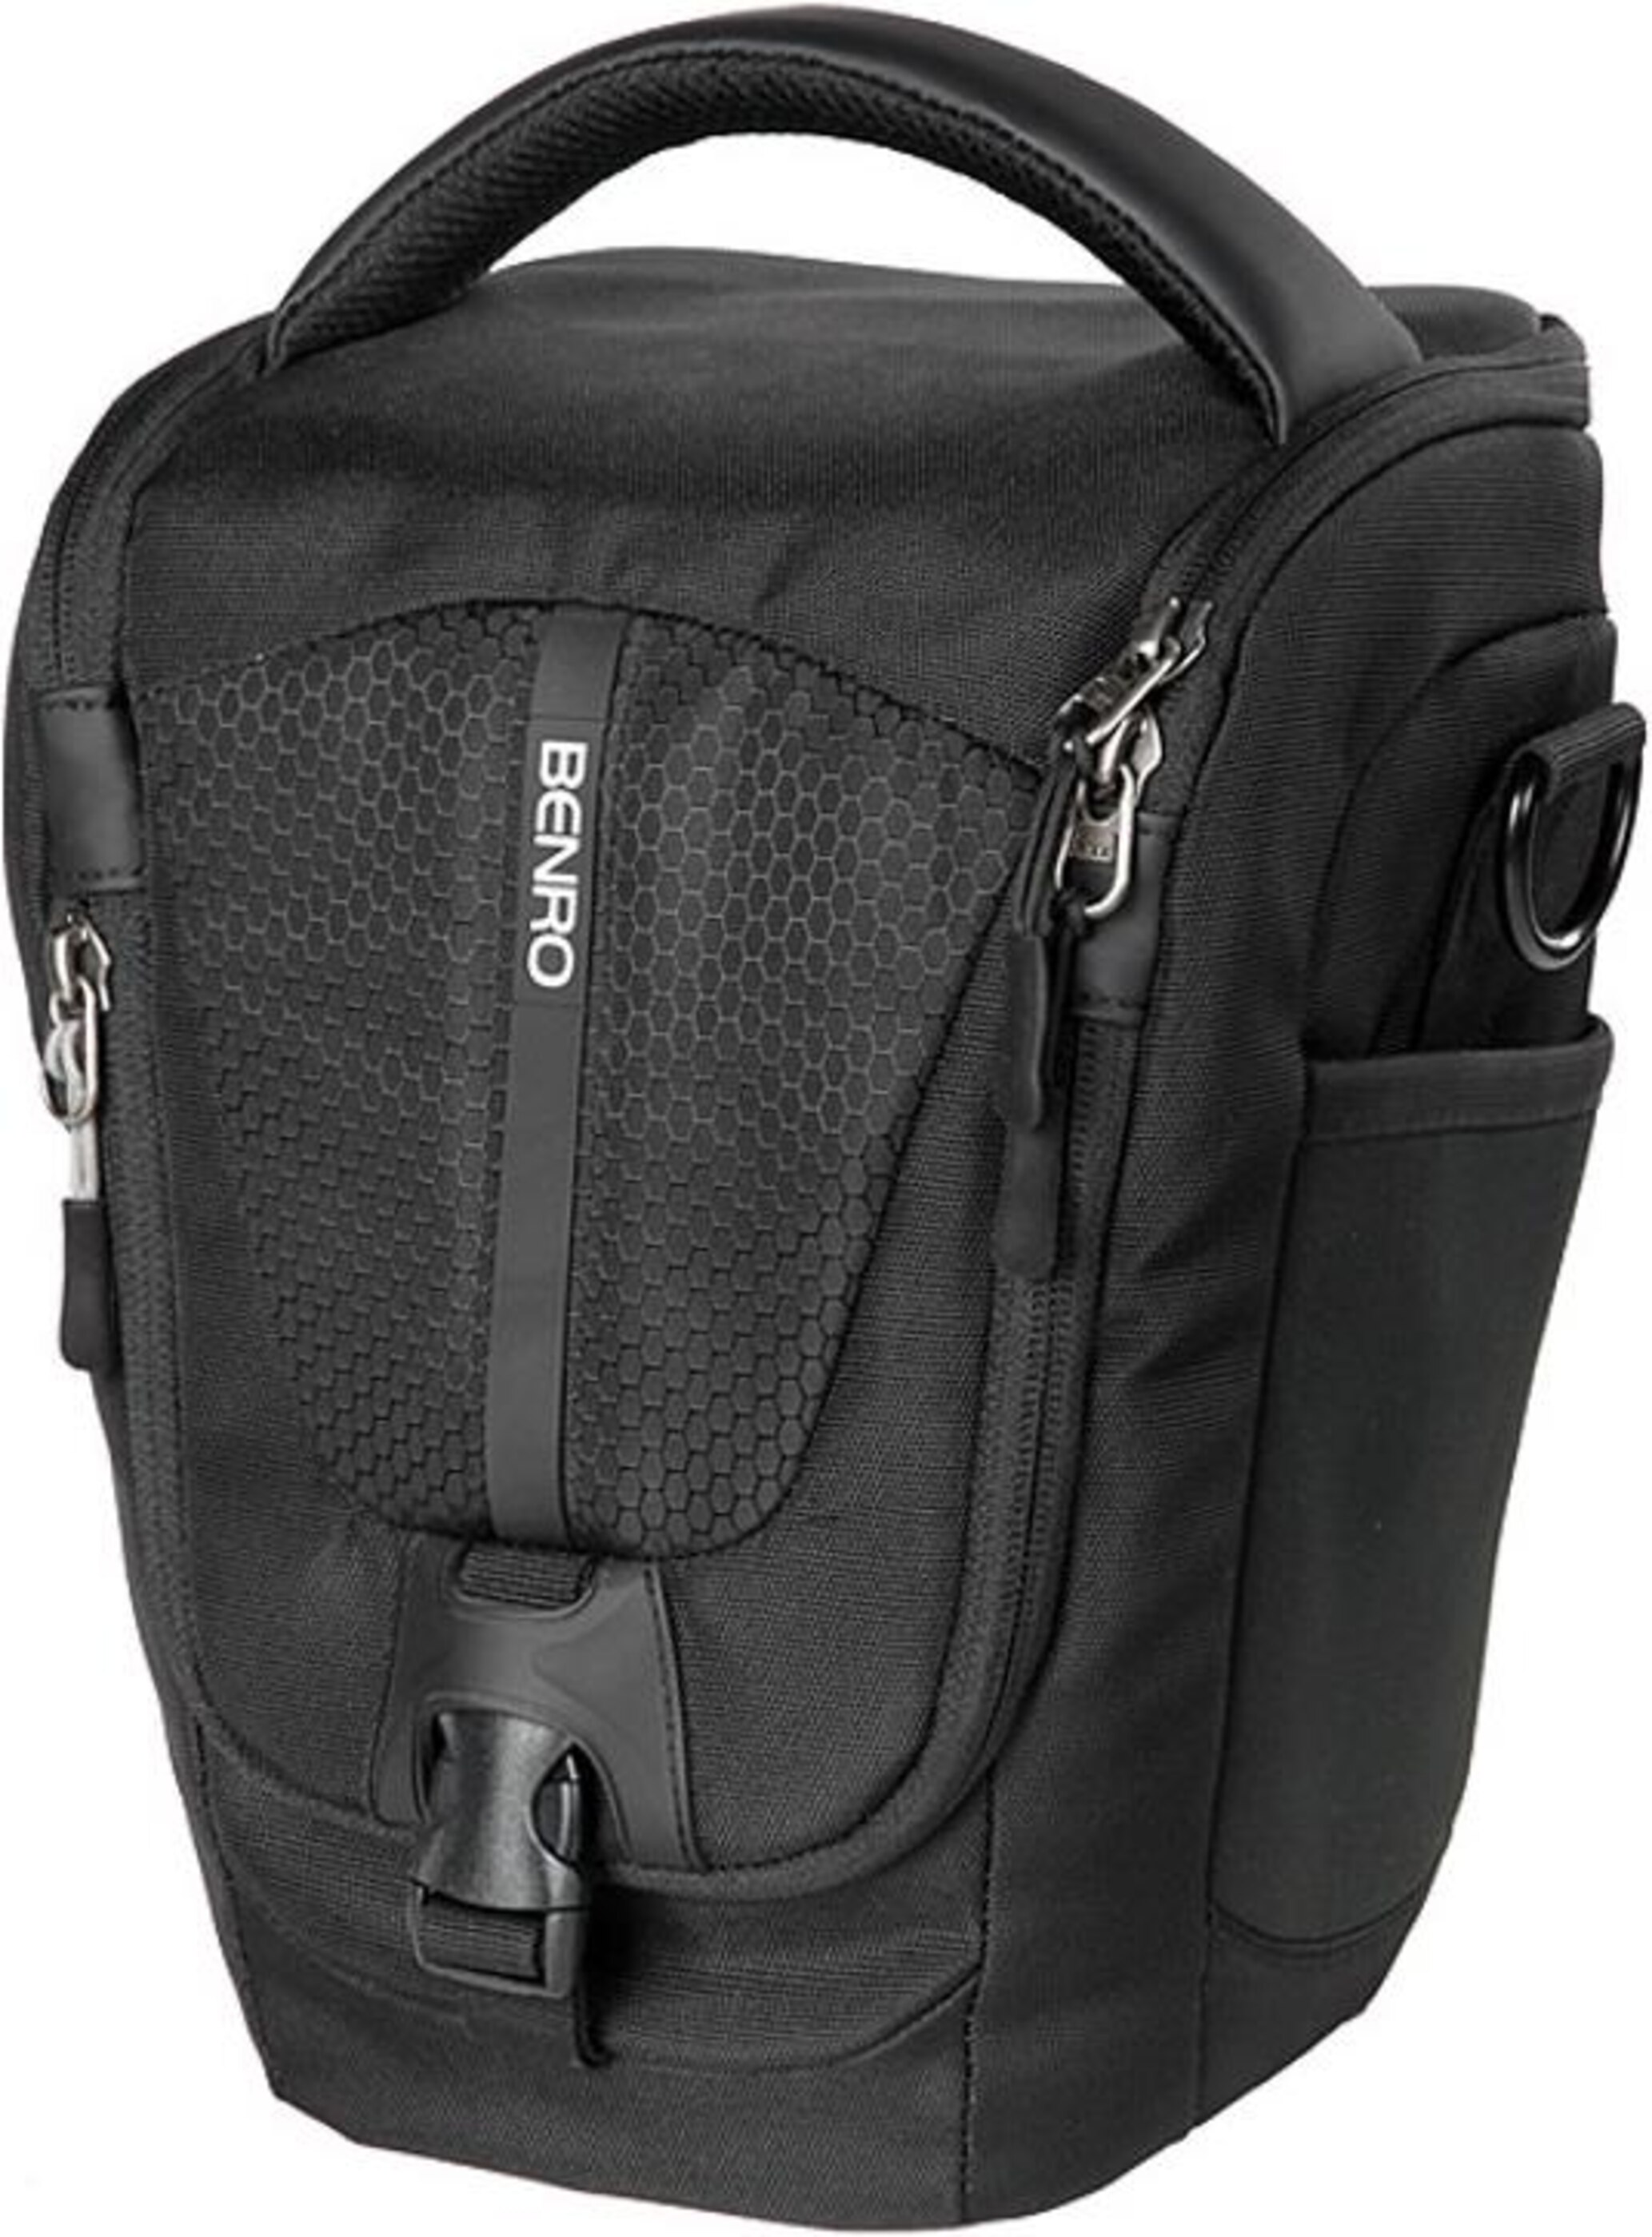 Benro Cool Walker Z30 Zoom Bag for Camera - Black (CWZ30)